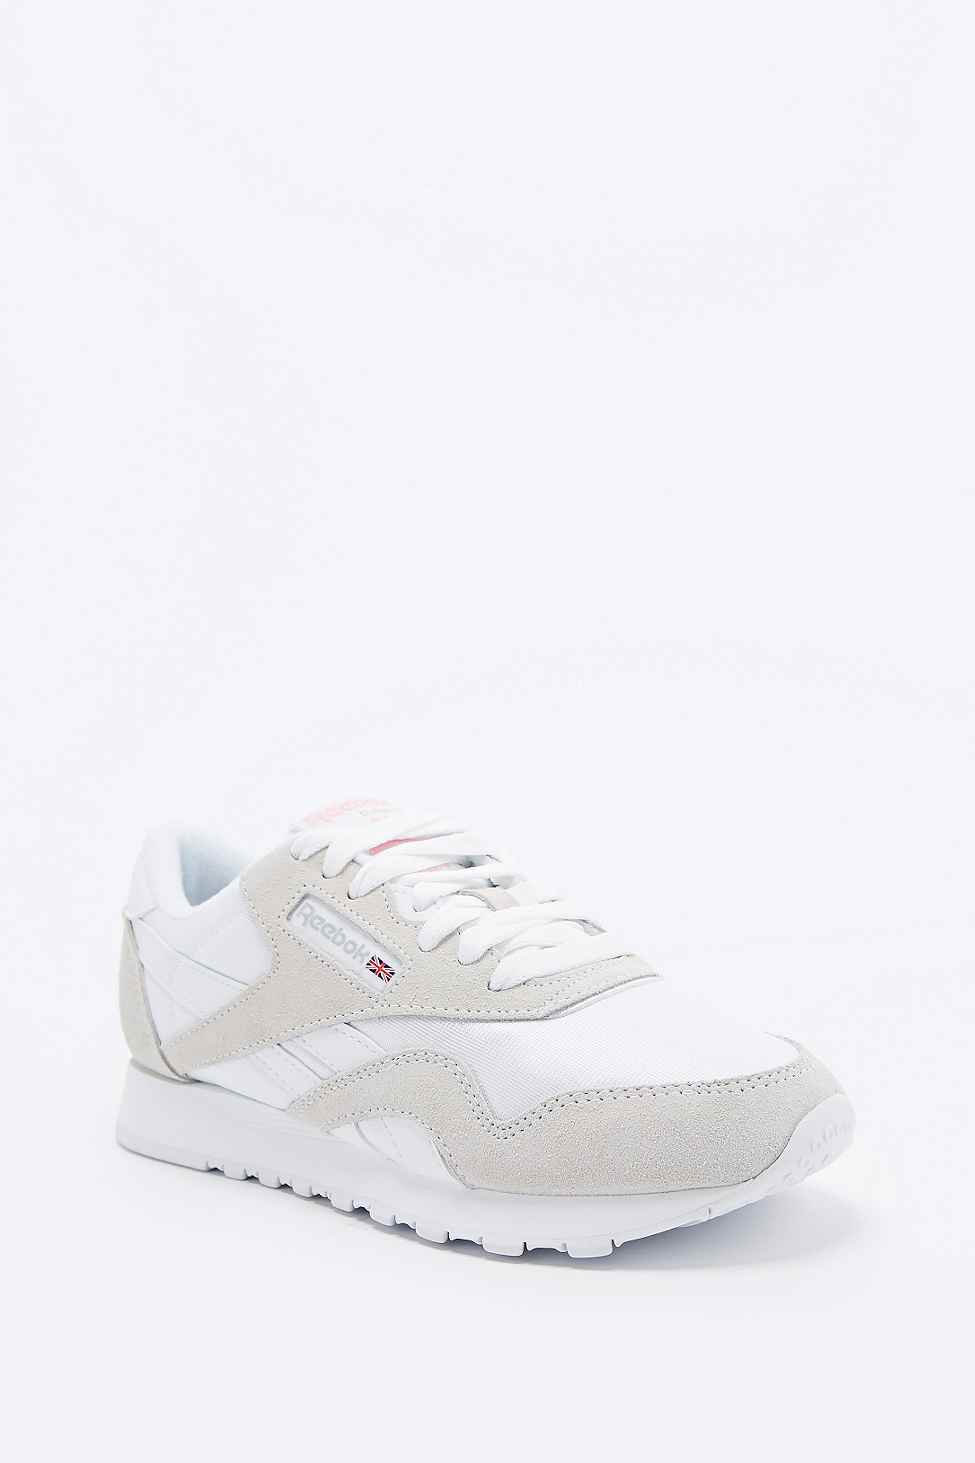 Reebok Classic White And Grey Nylon Runner Trainers in Grey